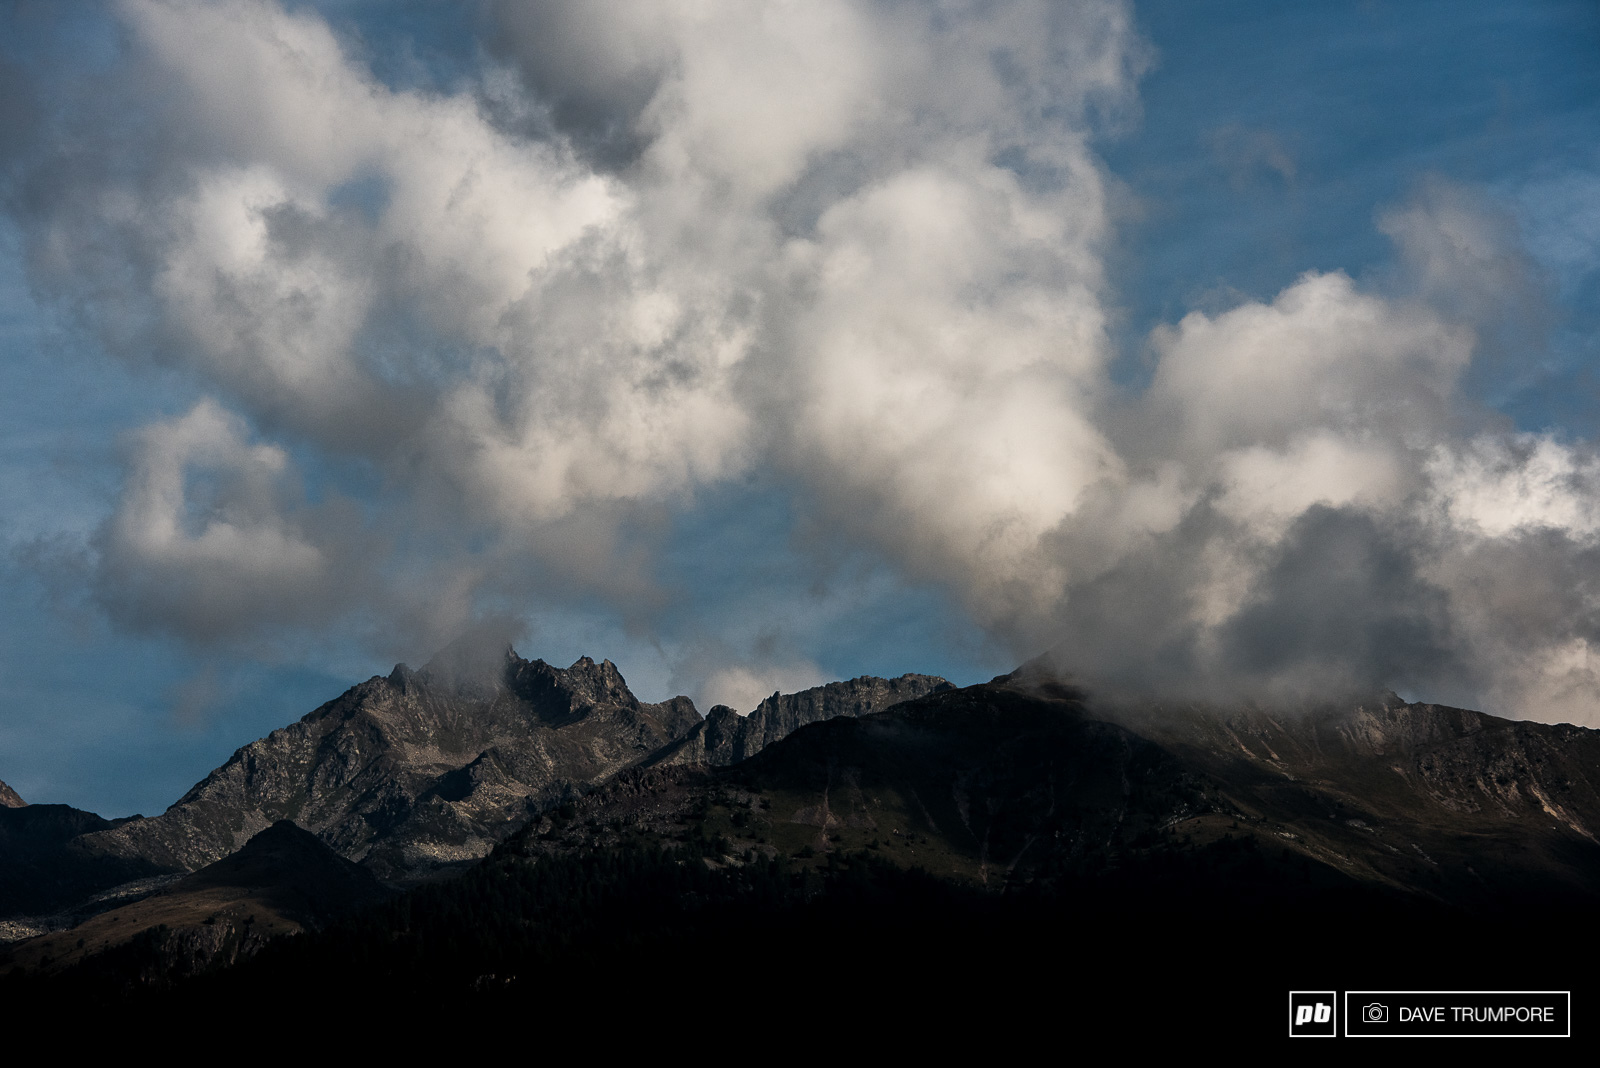 Clouds would build all day but luckily no rain would dampen the vibe in Val di Sole.